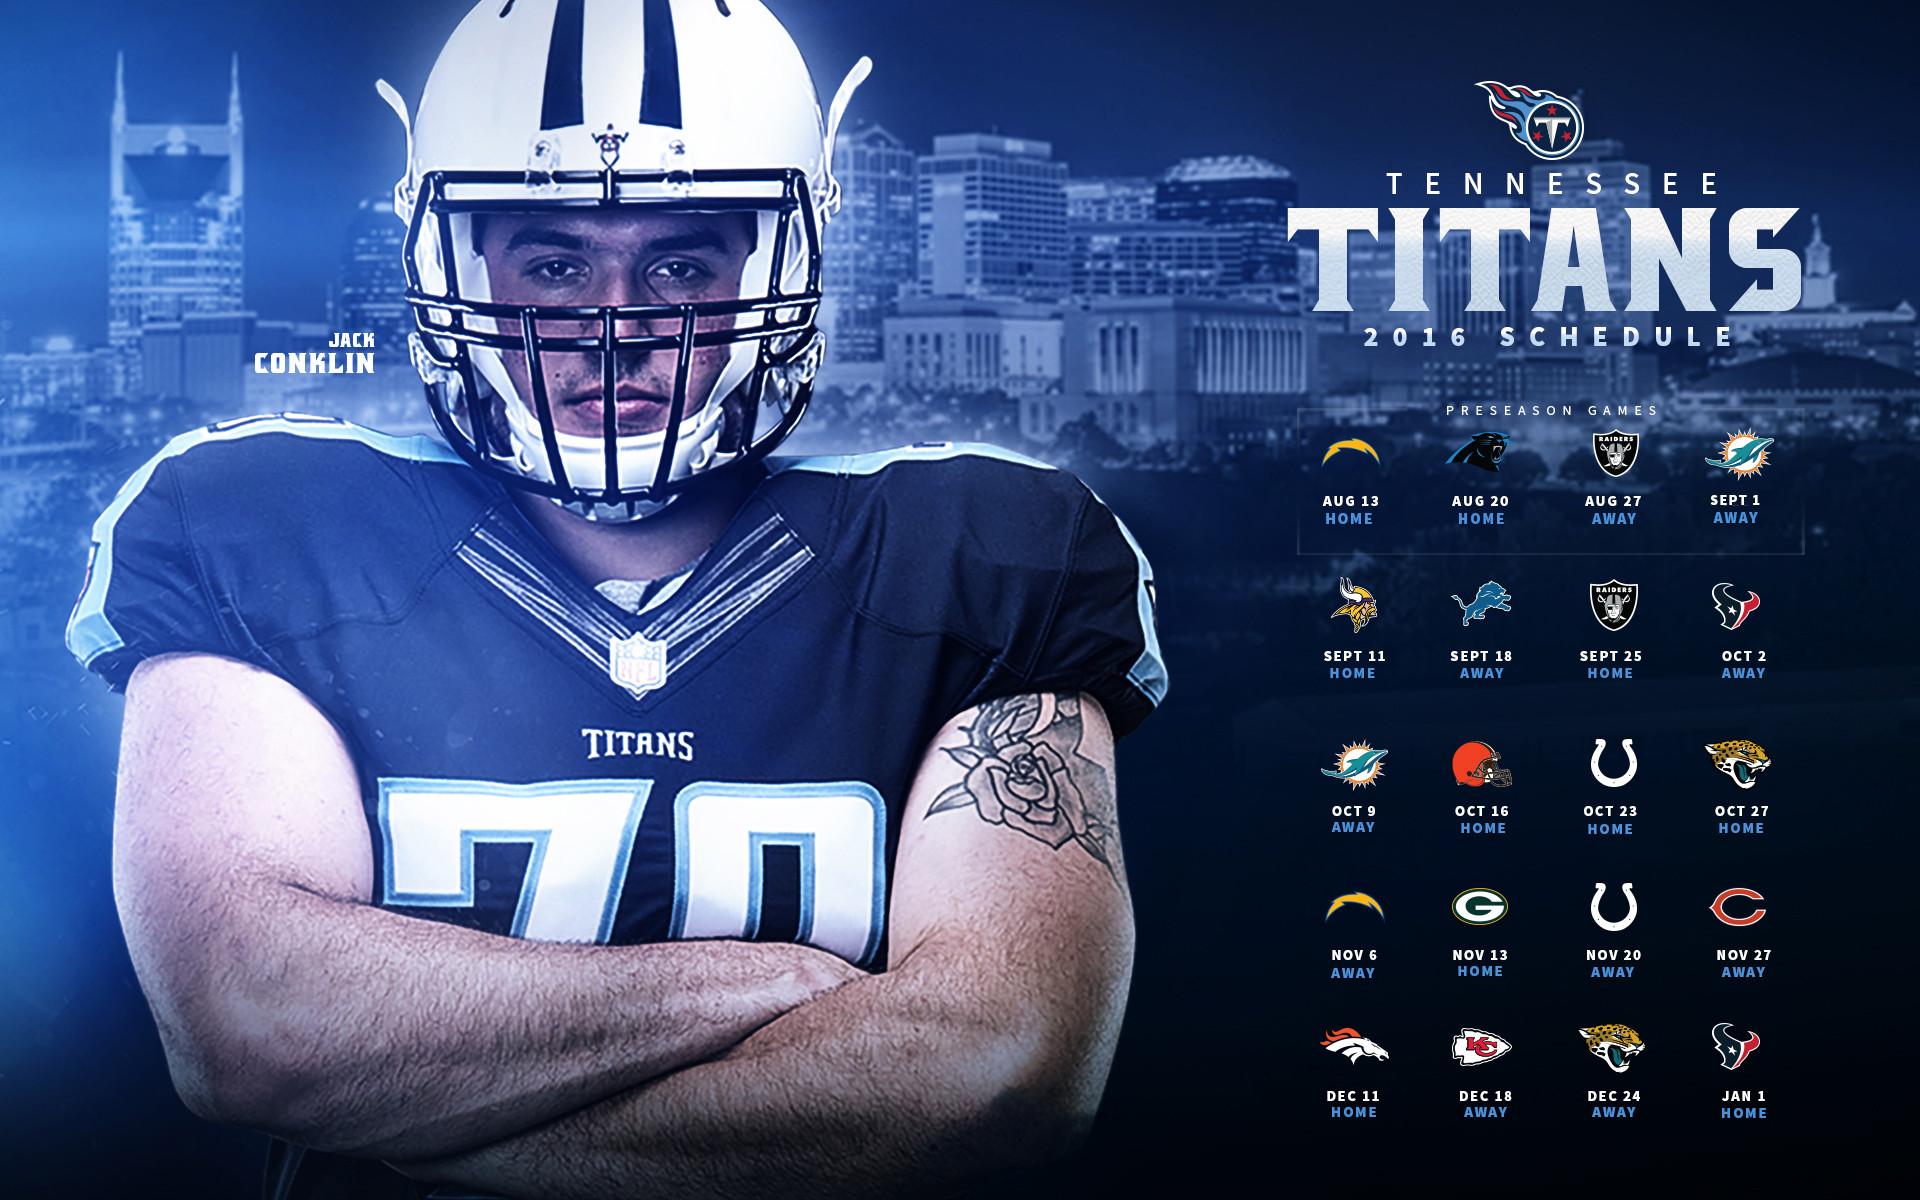 Res: 1920x1200, Tennessee Titans Wallpaper 19 - 1920 X 1200